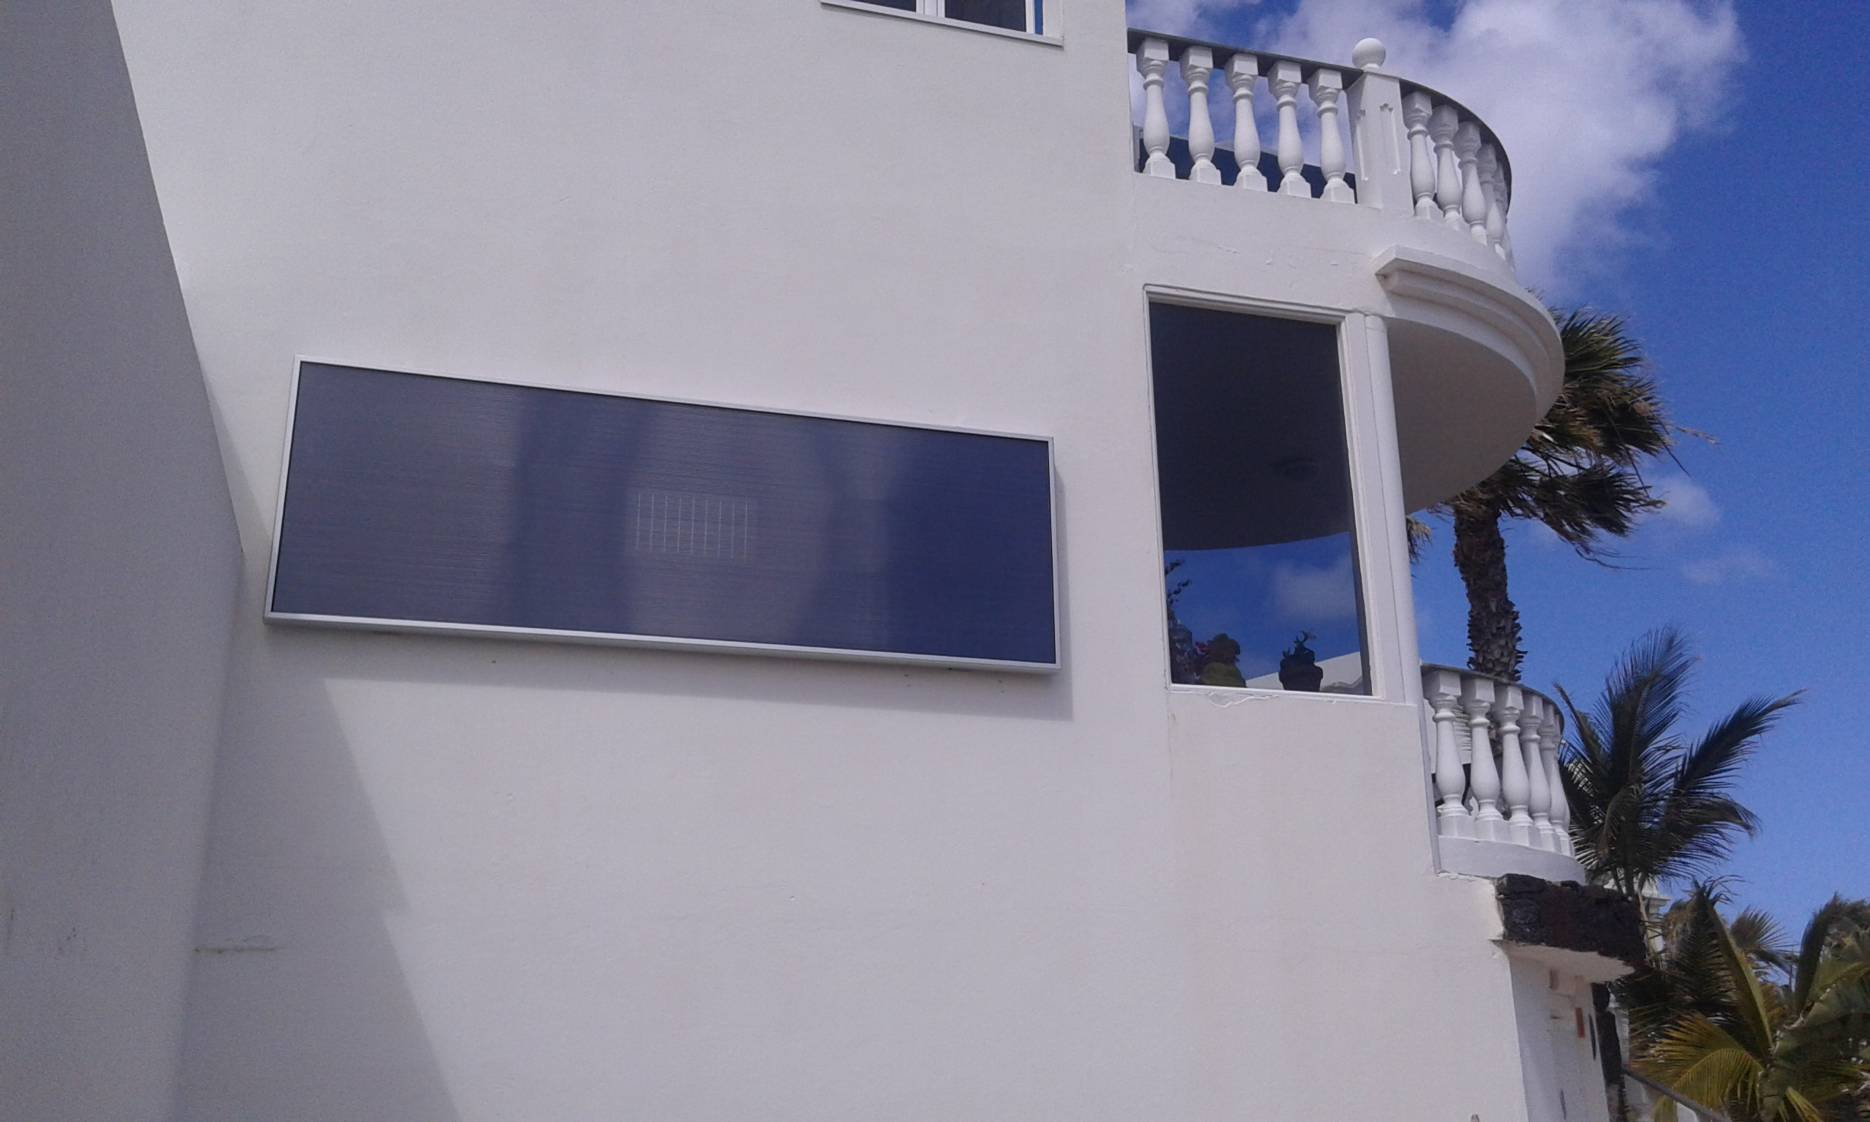 deshumidificacion Canarias en pared SolarVenti Entfeuchtung Dehumidification